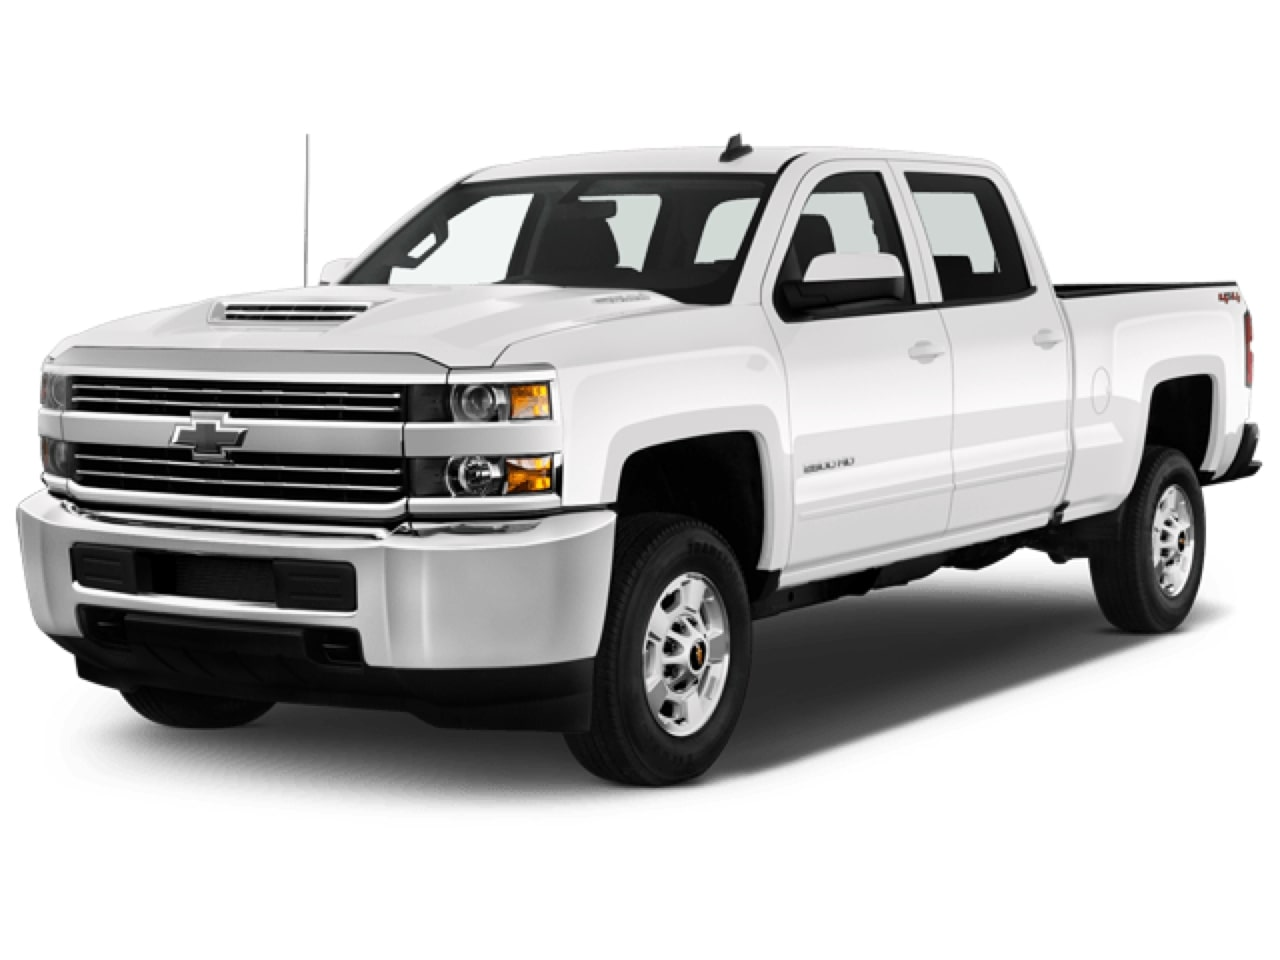 Craigslist Raleigh Cars And Trucks By Owner >> Autolist Search New And Used Cars For Sale Compare Prices